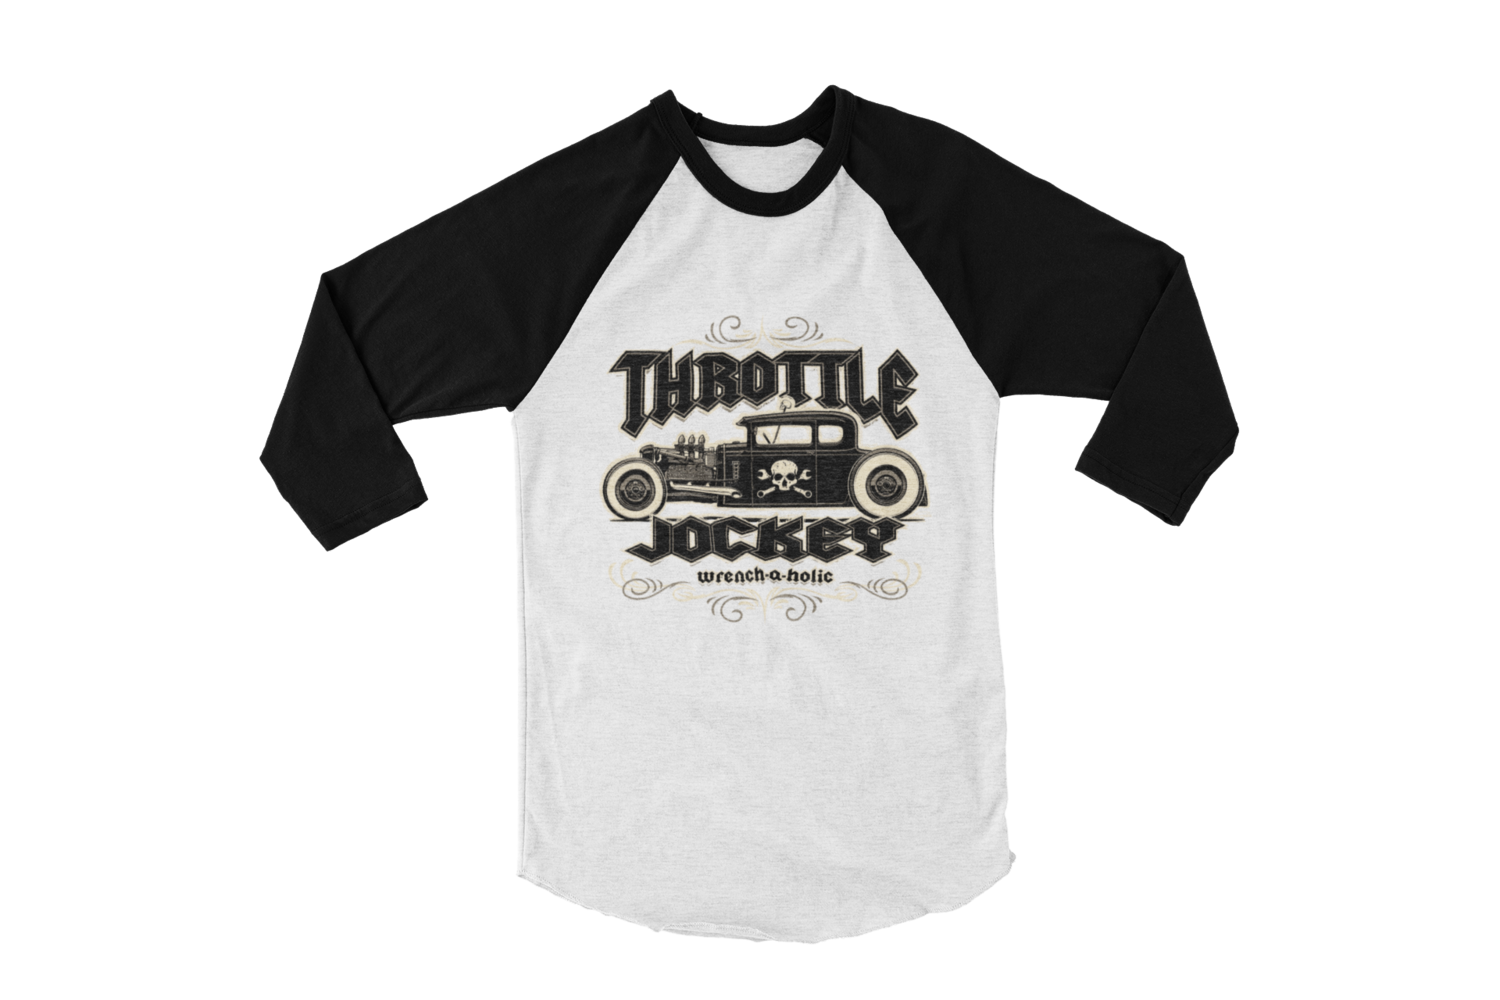 """THROTTLE JOCKEY """"Wrench a Holic"""" BASEBALL LONG SLEEVE UNISEX BY Ger """"Dutch Courage"""" Peters artwork"""